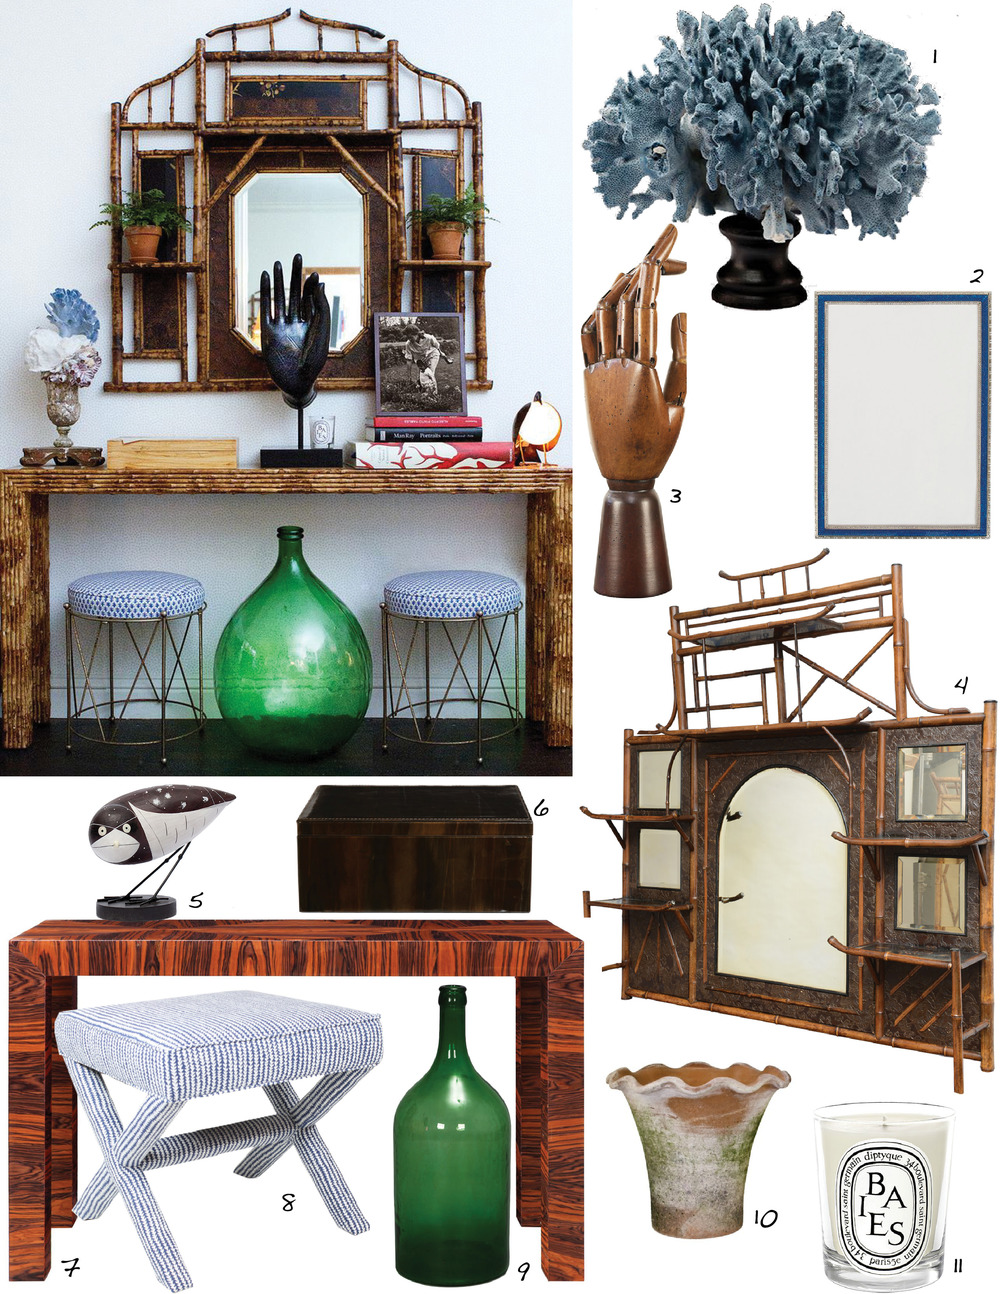 Links:     1. Coral  +  2. Frame  +  3. Hand  +  4. Wall Shelf  +  5. Owl  +  6. Box  +  7. Console  +  8. Bench  +  9. Green Glass Jug  +  10. Flower Pot  +  11. Candle